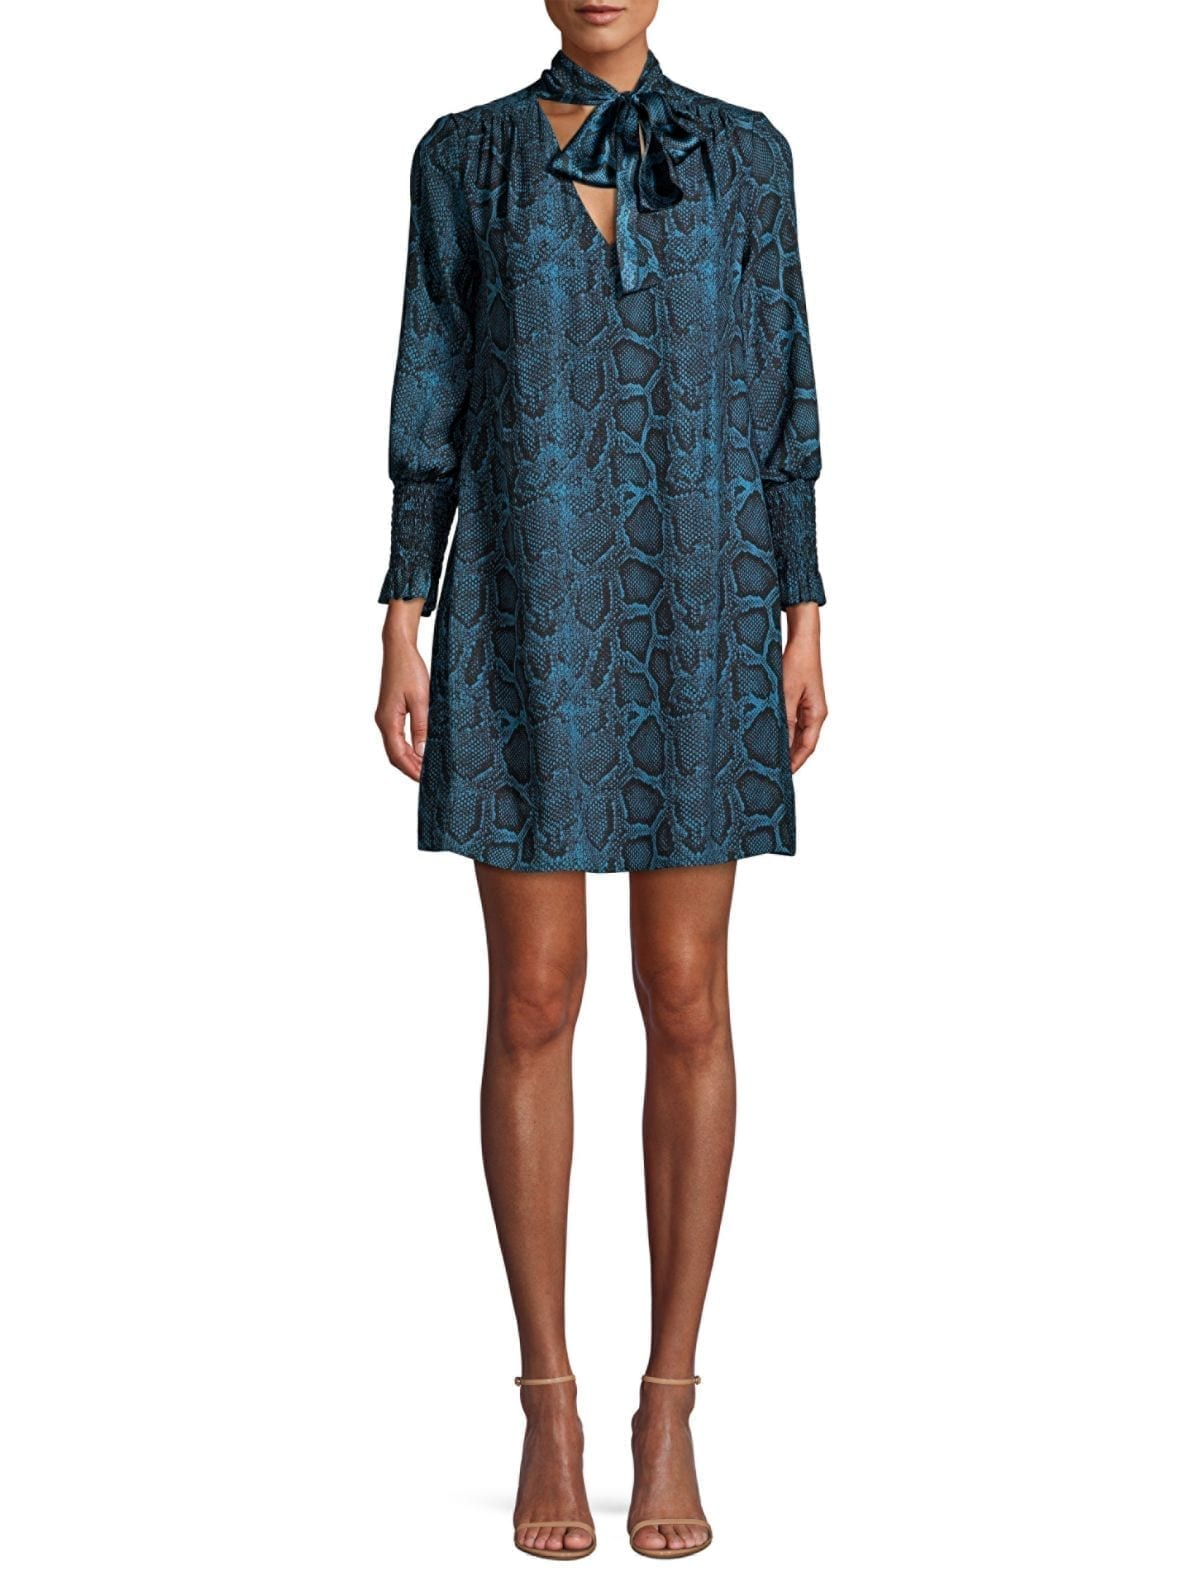 LA VIE REBECCA TAYLOR Snake Print Bow Collar Storm Dress